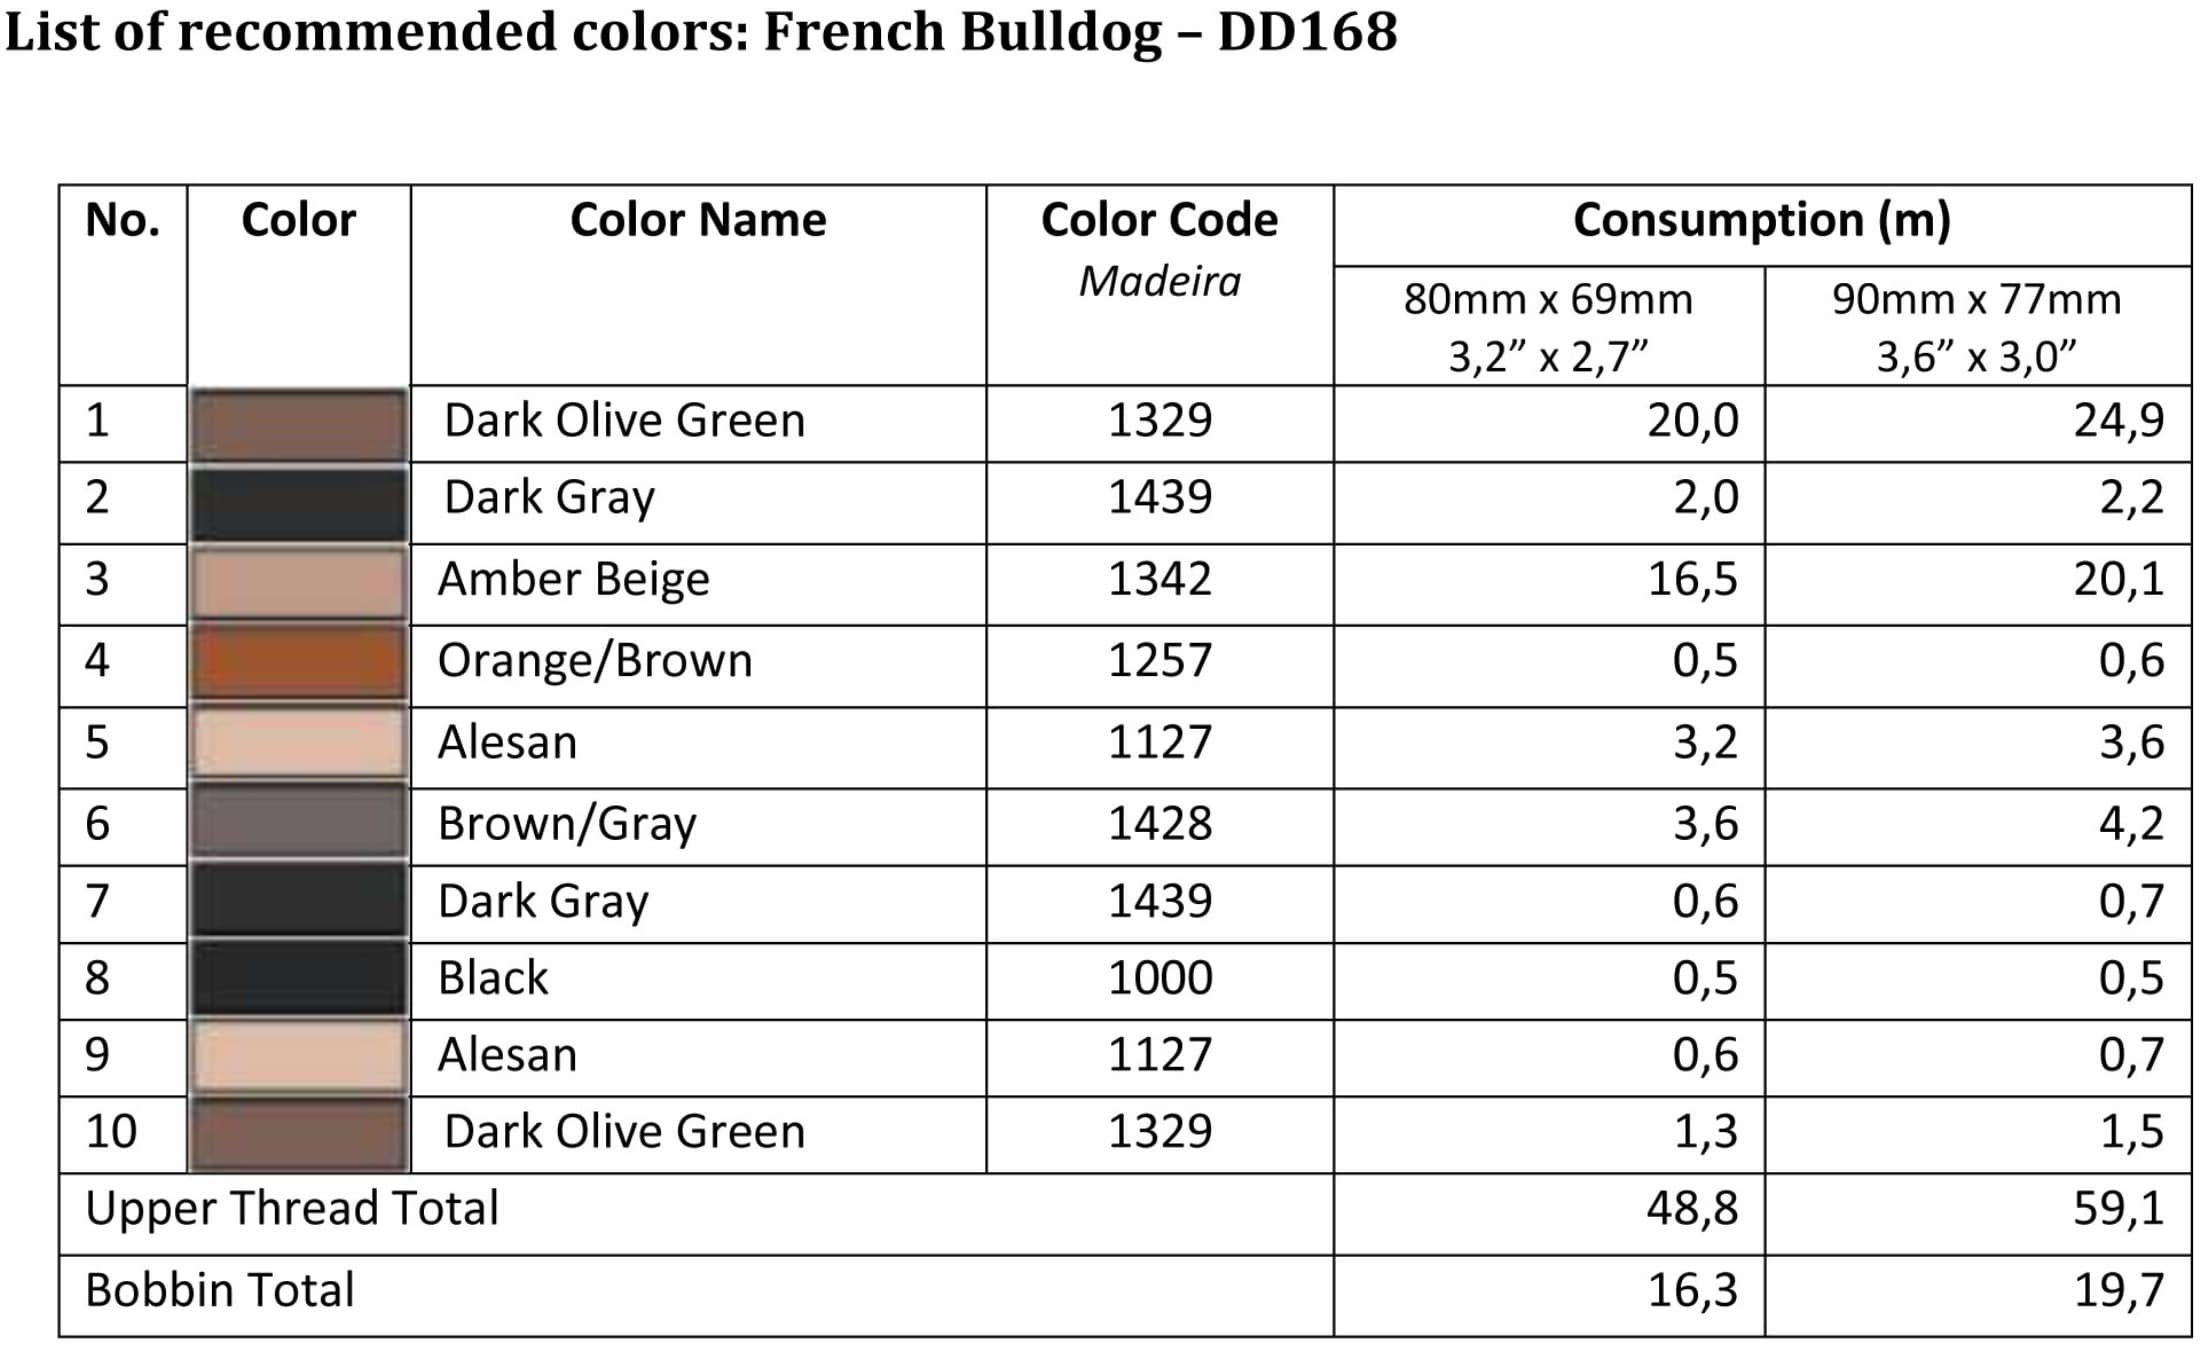 List of recommended colors - DD168